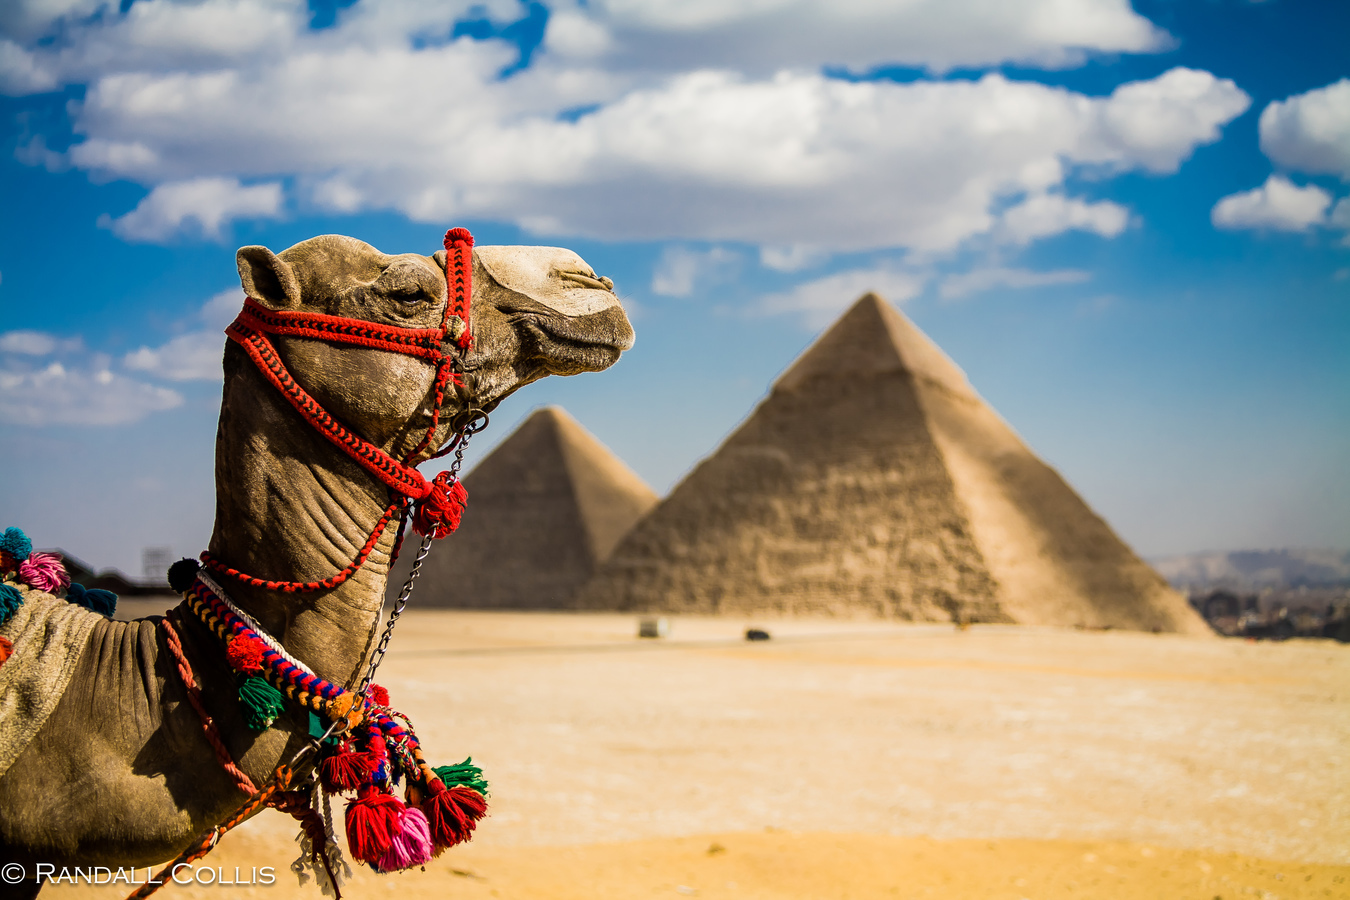 Blogger | Explore Egypt - Discover 10 cities in Egypt